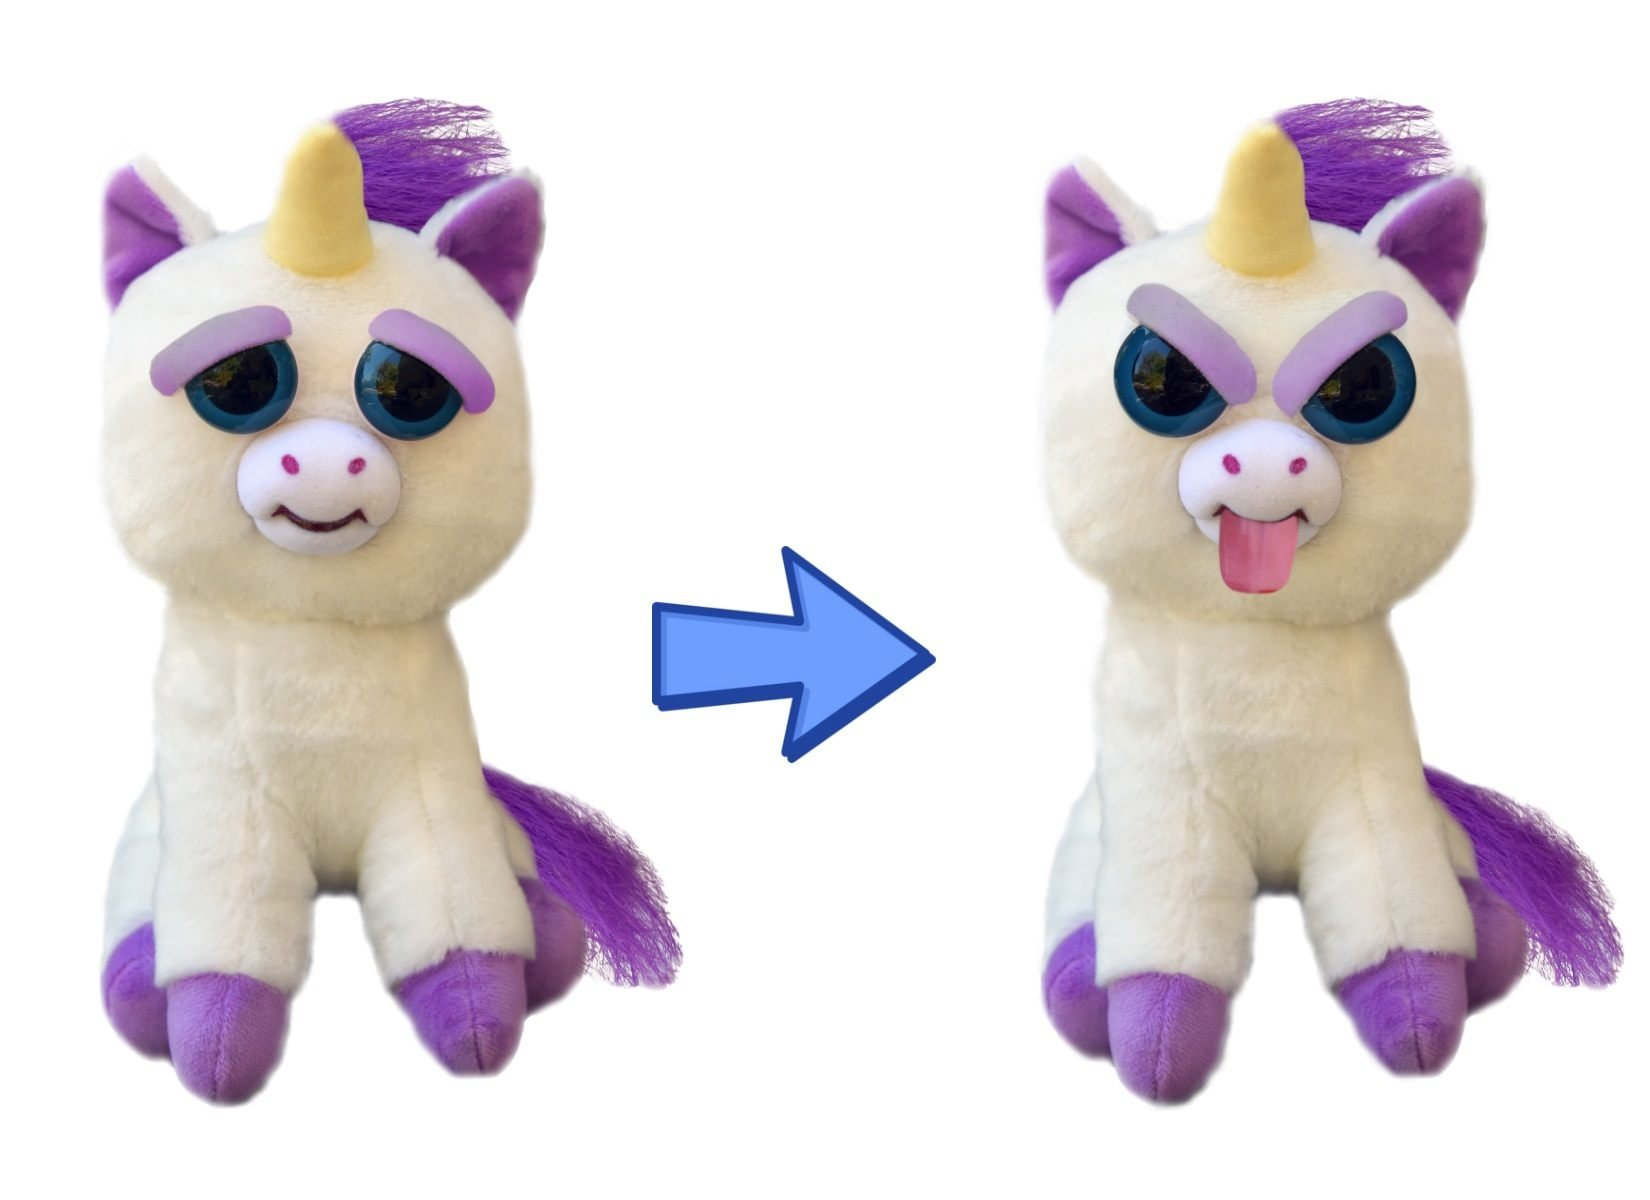 Feisty Pets Expressions, Glenda Glitterpoop, Plush Stuffed Pet Animal That Sticks Her Tongue Out With a Squeeze by Feisty Pets